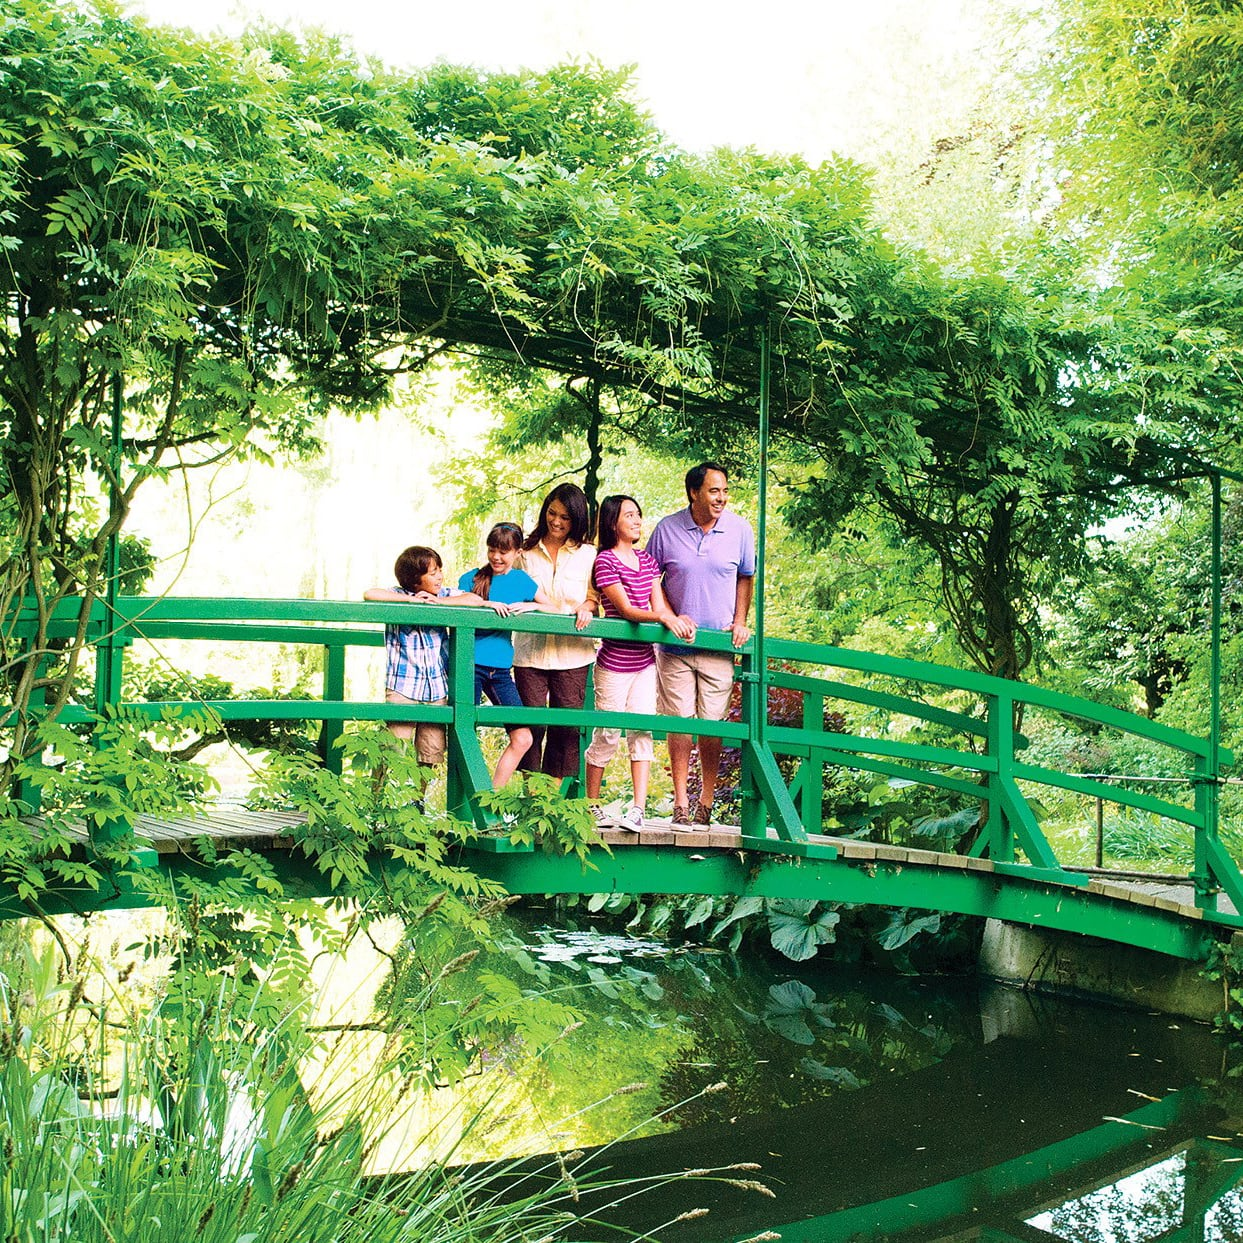 A family of 5 stands on a bridge at the house of Claude Monet in Giverny, France